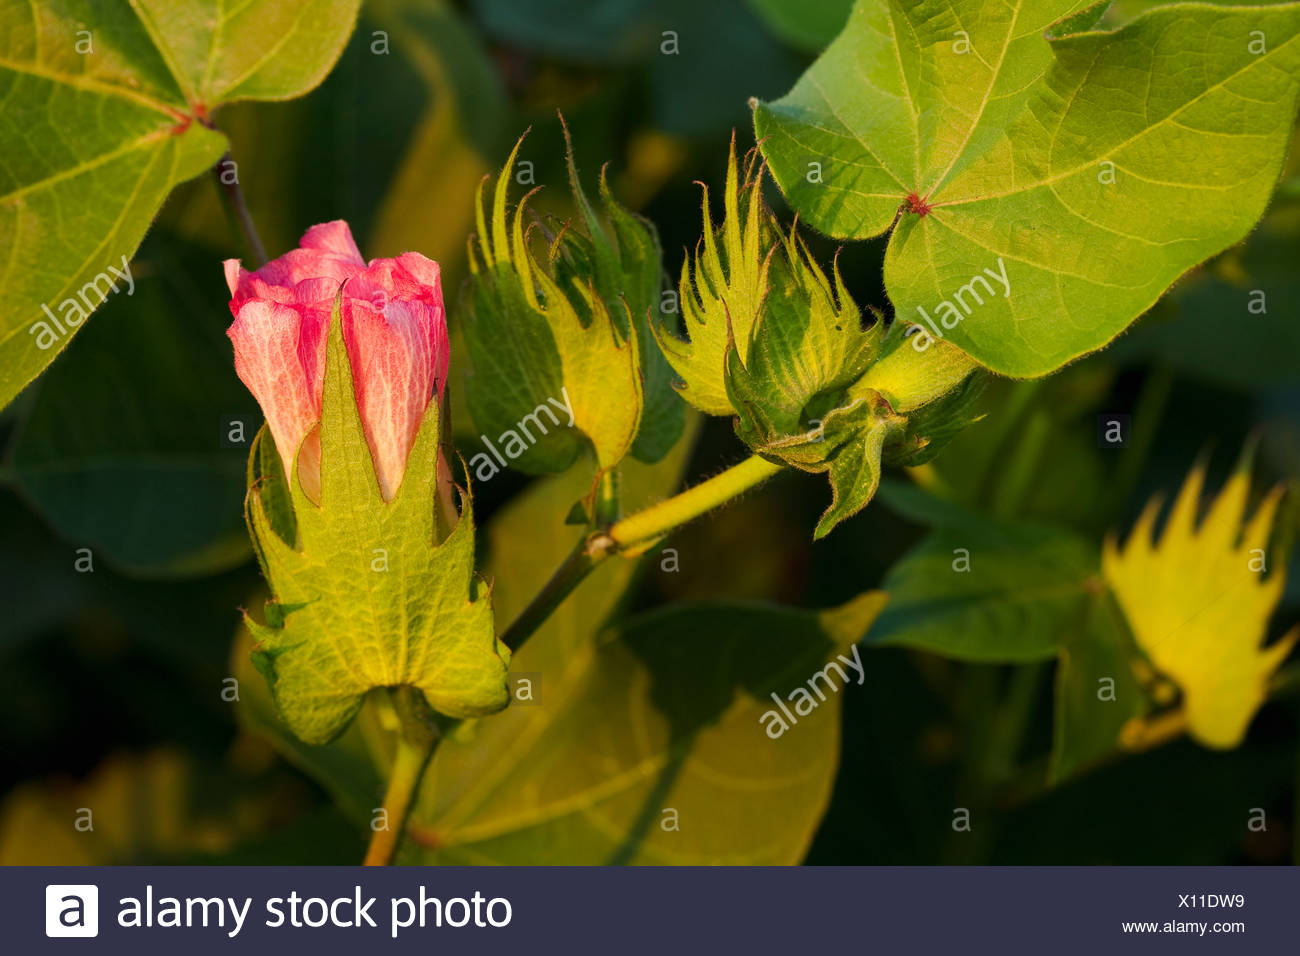 Agriculture - Closeup of a pink blossom and green squares on a mid growth cotton plant / Arkansas, USA. - Stock Image